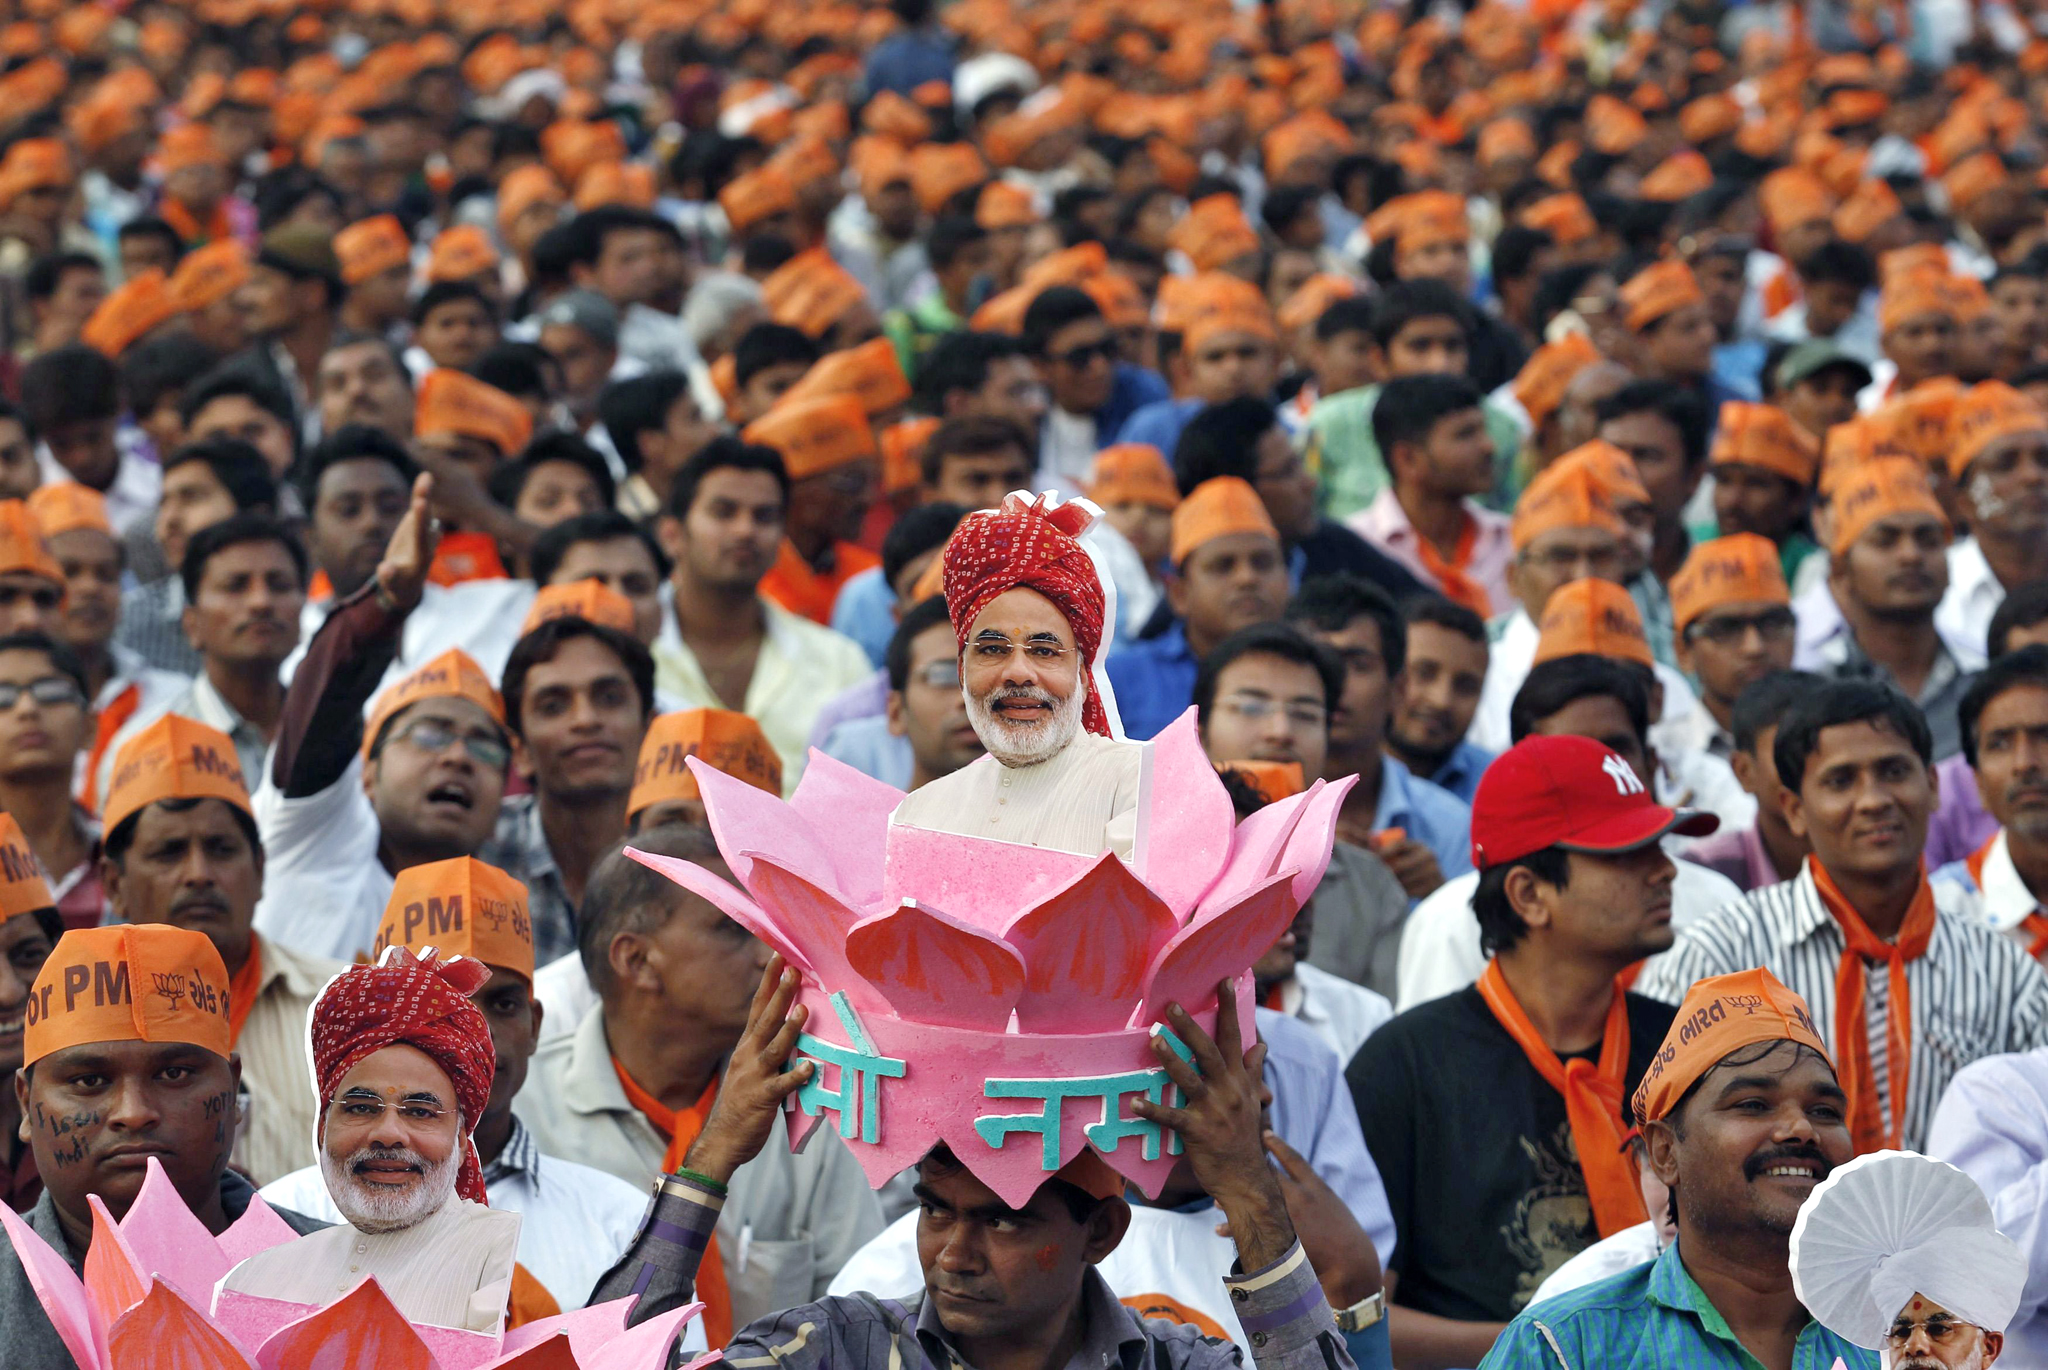 A supporter of Narendra Modi, the prime ministerial candidate for Bharatiya Janata Party, wears a headgear with a portrait of Modi during a rally in Ahmedabad...A supporter of Gujarat's chief minister and Hindu nationalist Narendra Modi, the prime ministerial candidate for India's main opposition Bharatiya Janata Party (BJP), wears a headgear with a portrait of Modi during a rally being addressed by Modi ahead of the 2014 general elections, in the western Indian city of Ahmedabad February 20, 2014. REUTERS/Amit Dave